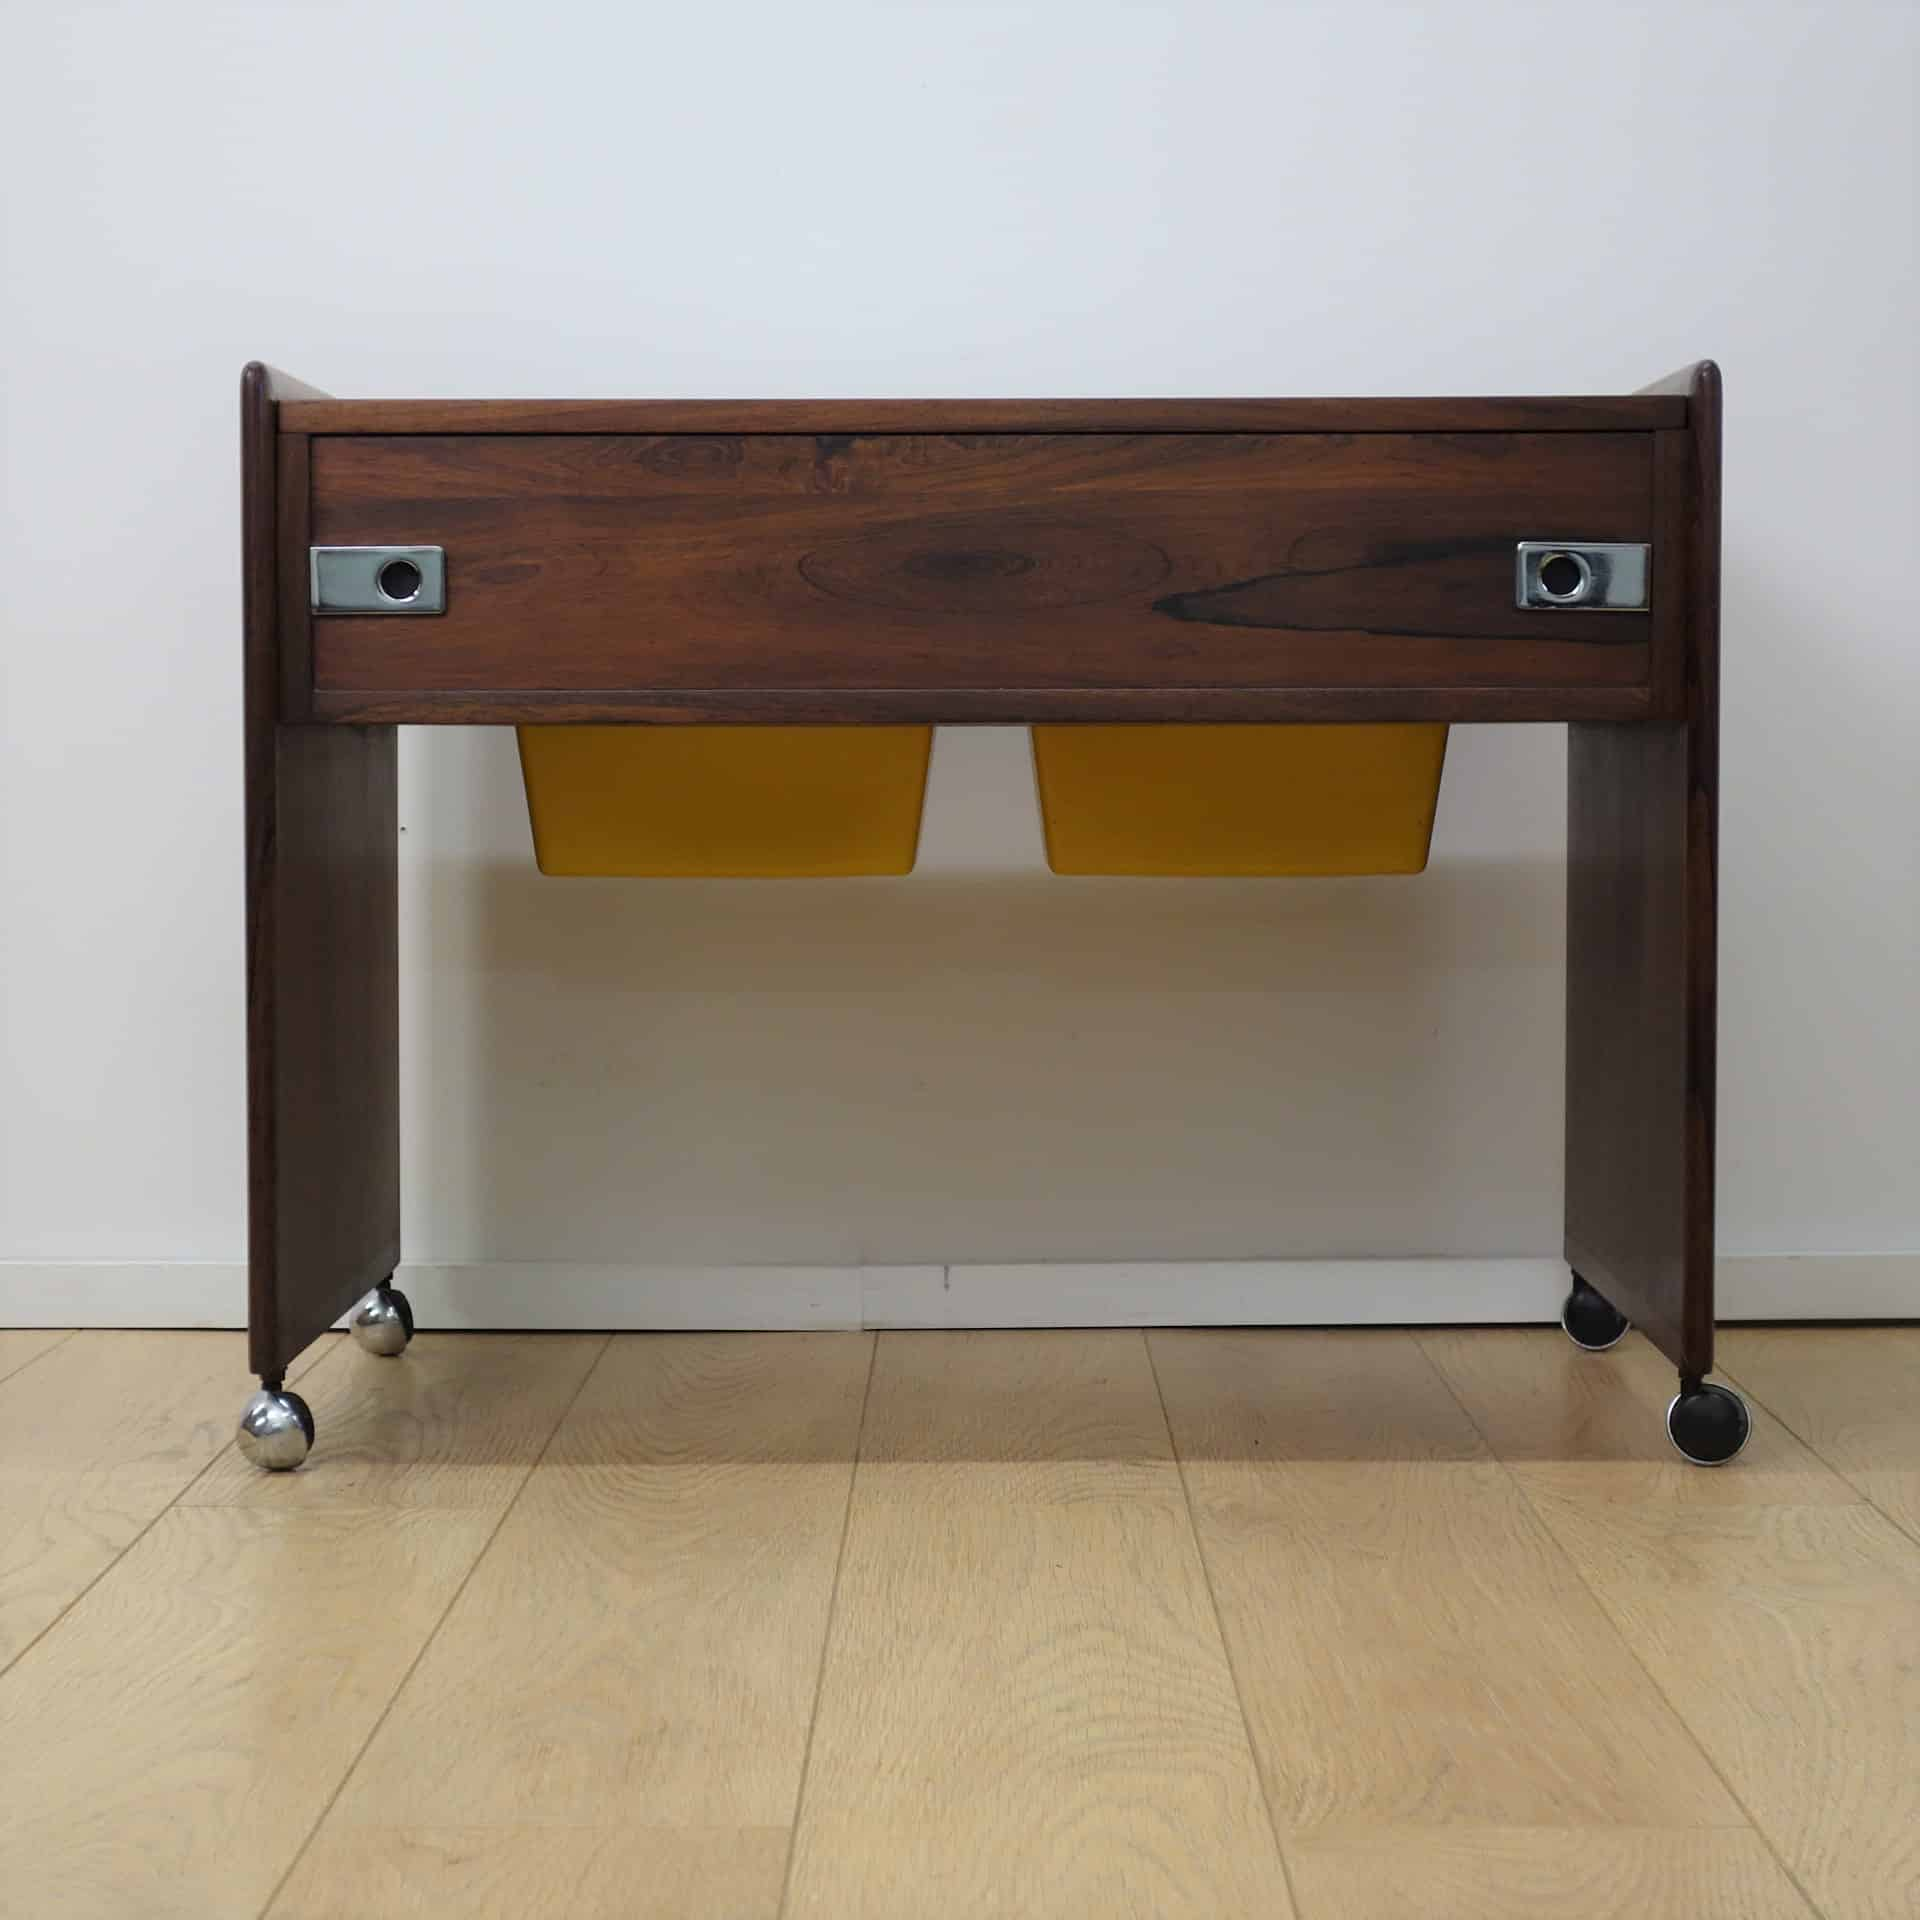 A small 1960s Rosewood dressing table